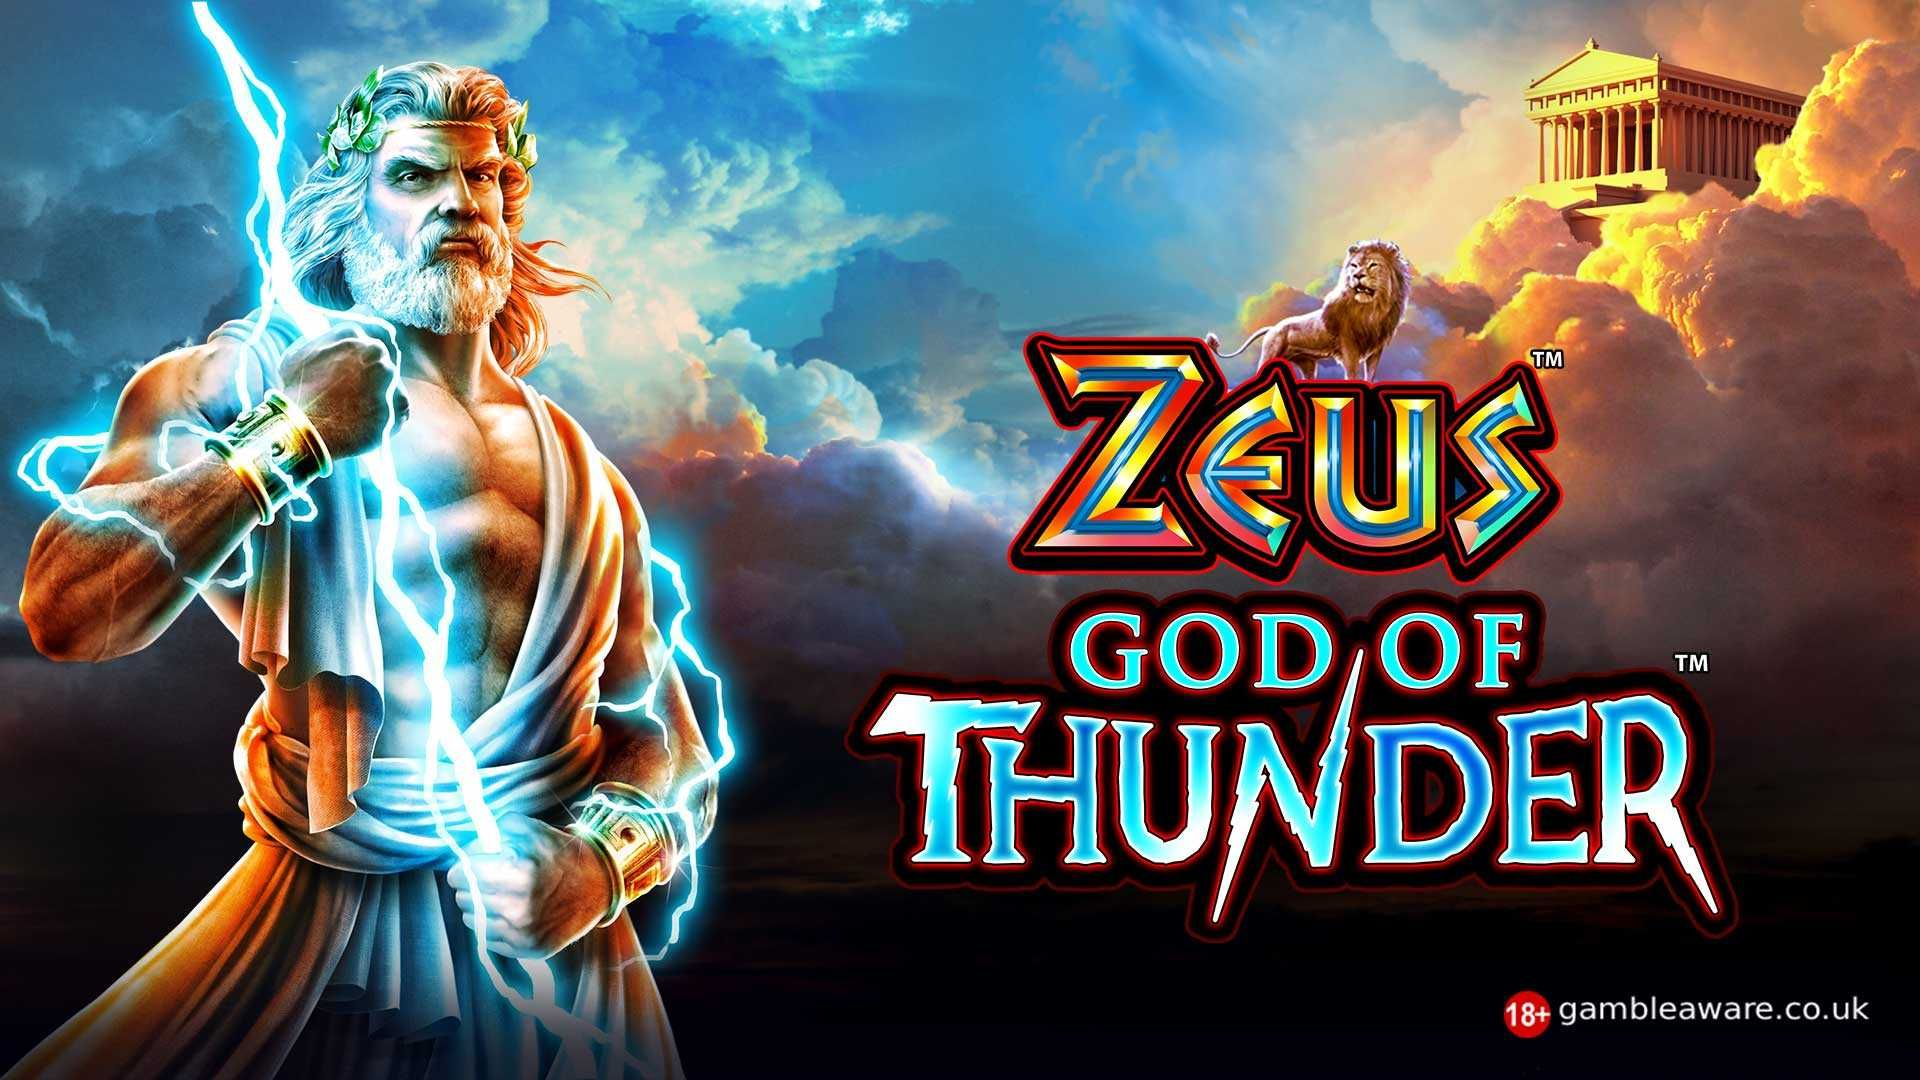 Zeus God Of Thunder In 2019 Zeus Zeus God Of Thunder